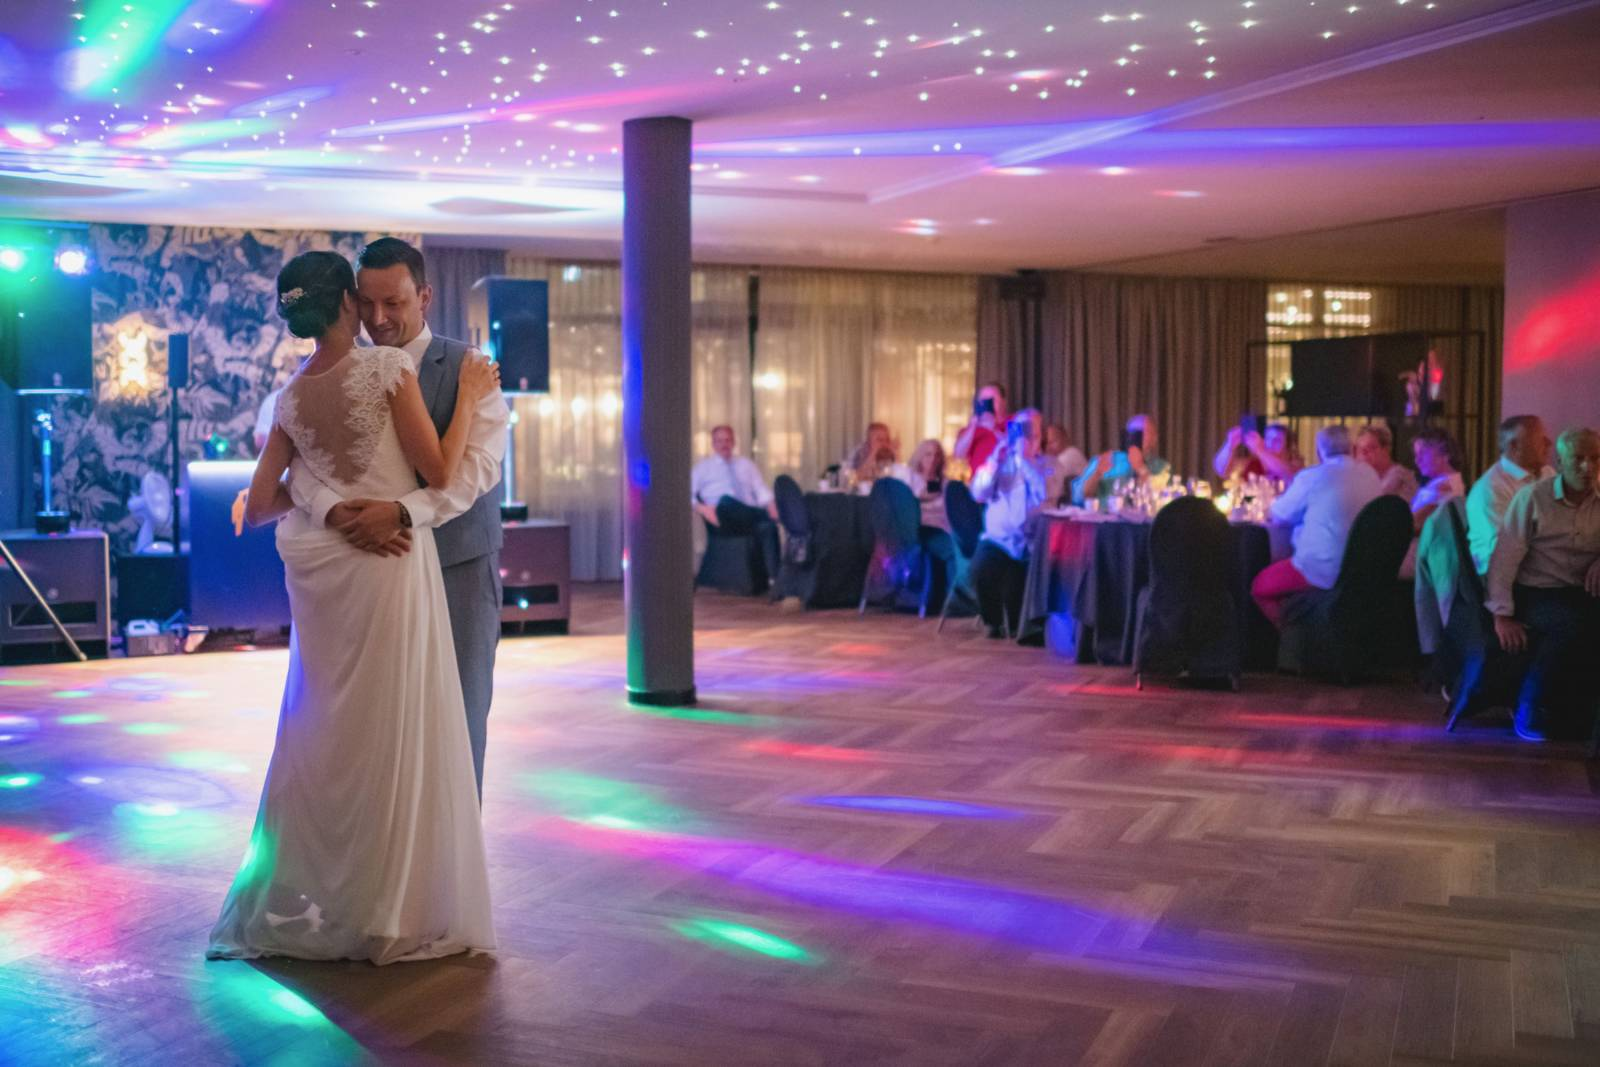 Van der Valk hotel Beveren - Feestzaal - Trouwzaal - House of Weddings - 13